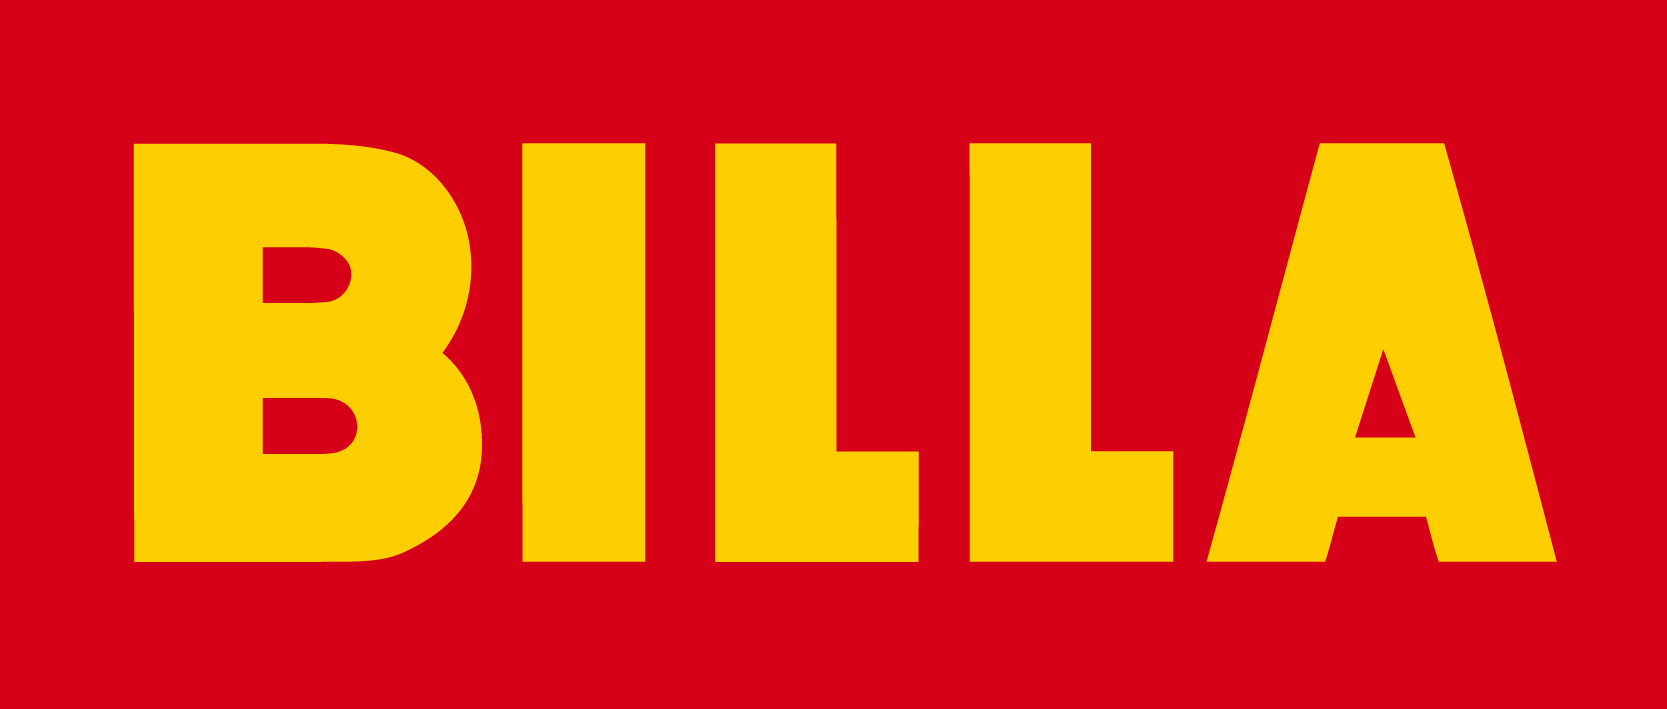 123logo_billa_privatelabel.jpg